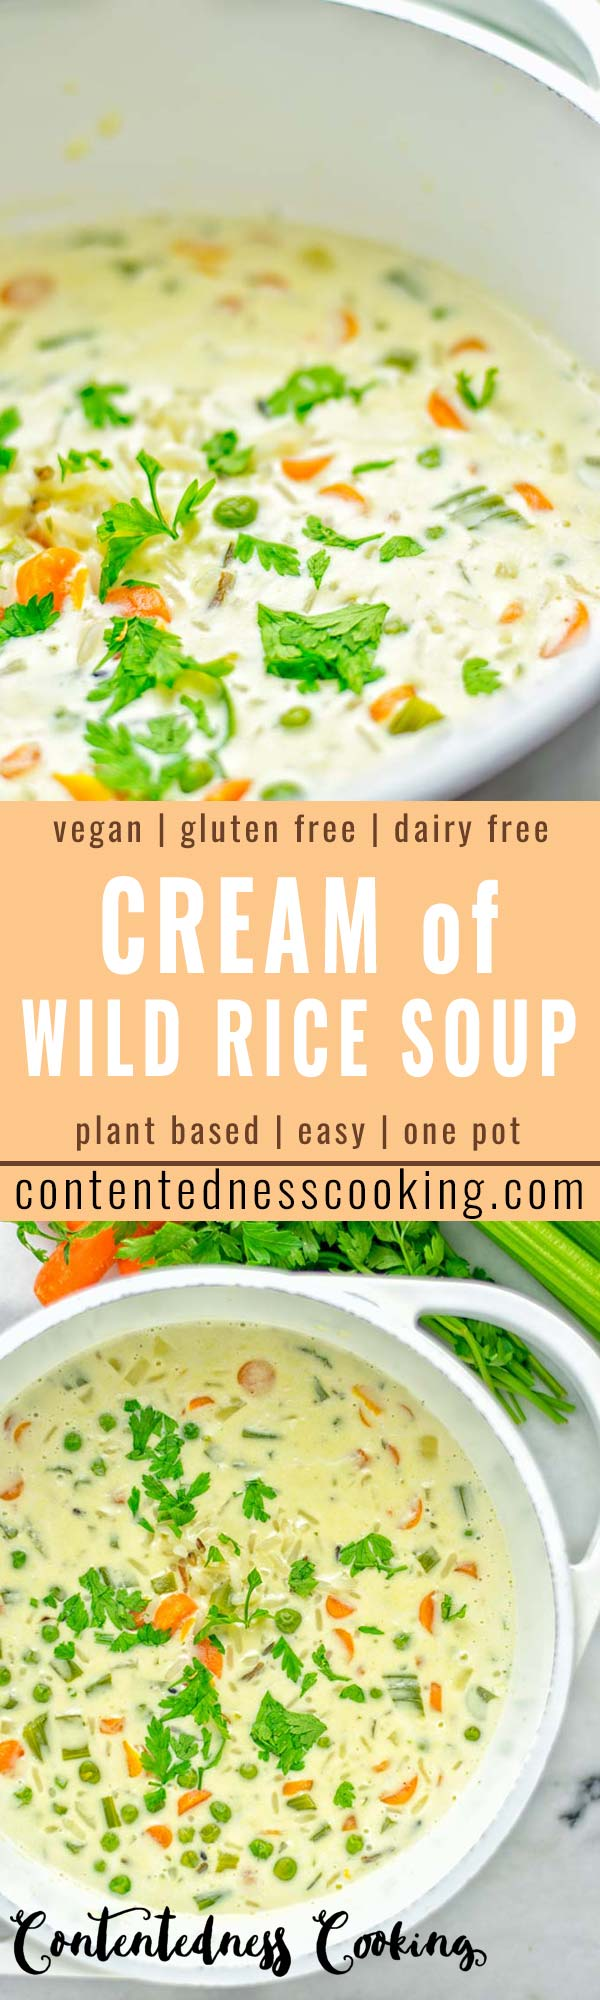 This Cream of Wild Rice Soup is entirely vegan, gluten free and super easy to make in one pot. An amazing soup for dinner, lunch, meal preparation, work lunch and the holidays that the whole family will love. #vegan #dairyfree #glutenfree #vegetarian #onepotmeals #soup #mealprep #worklunchideas #thanksgiving #holidays #contentednesscooking #wildricesoup #wildrice #wildricerecipes #dinner #lunch